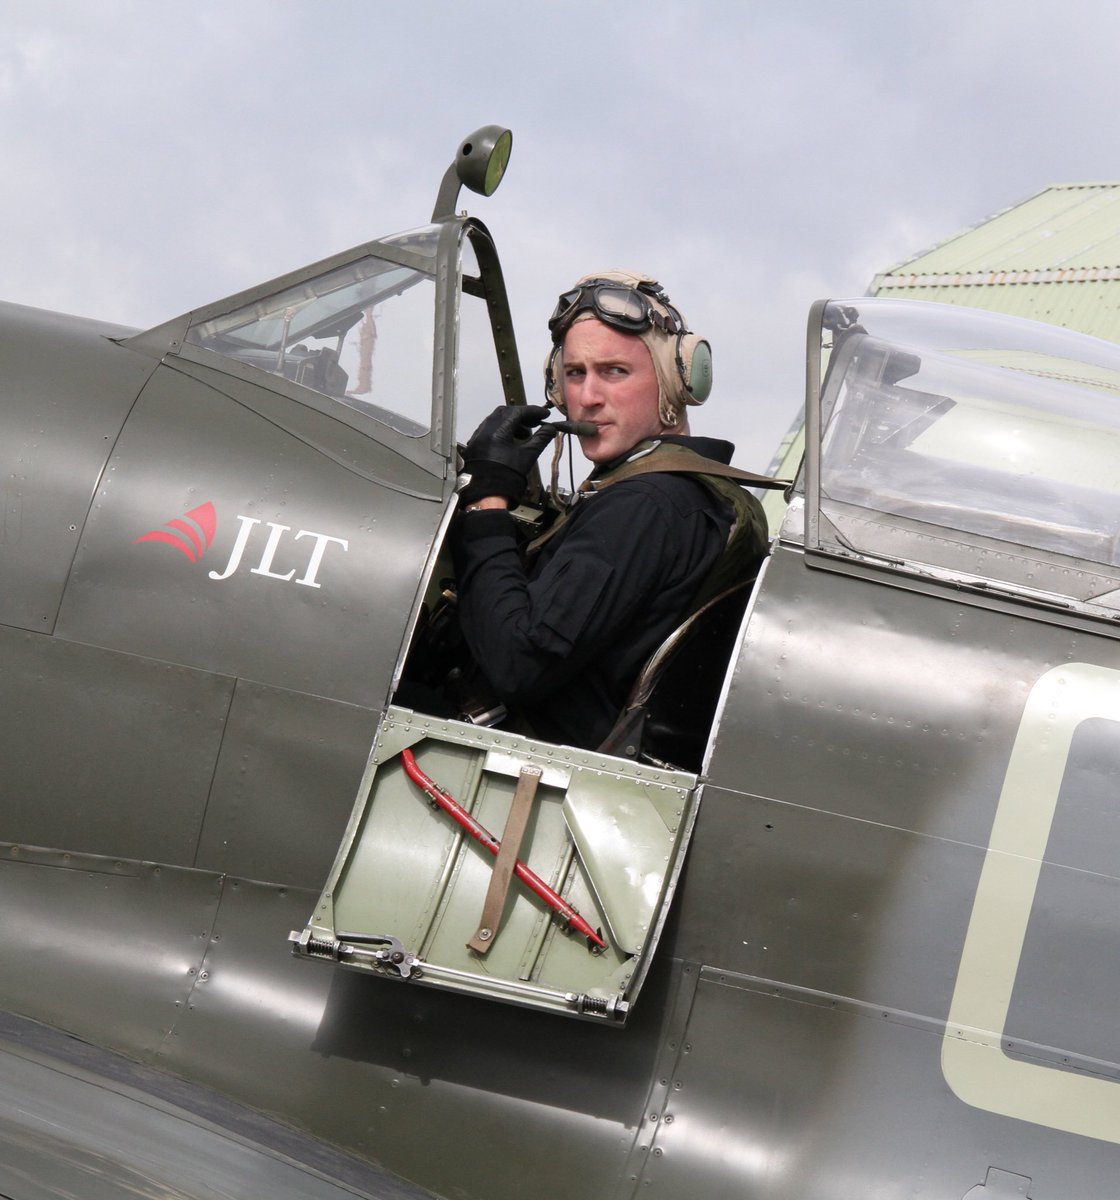 test Twitter Media - 33 years ago today I sat in our Spitfire ML407, with Nick in front ready to fly the first flight after his 5 year restoration -Richard was 9 months old -this photo shows Richard about to fly me 25 years on same date to commemorate his fathers achievement https://t.co/dmLivHXT4n